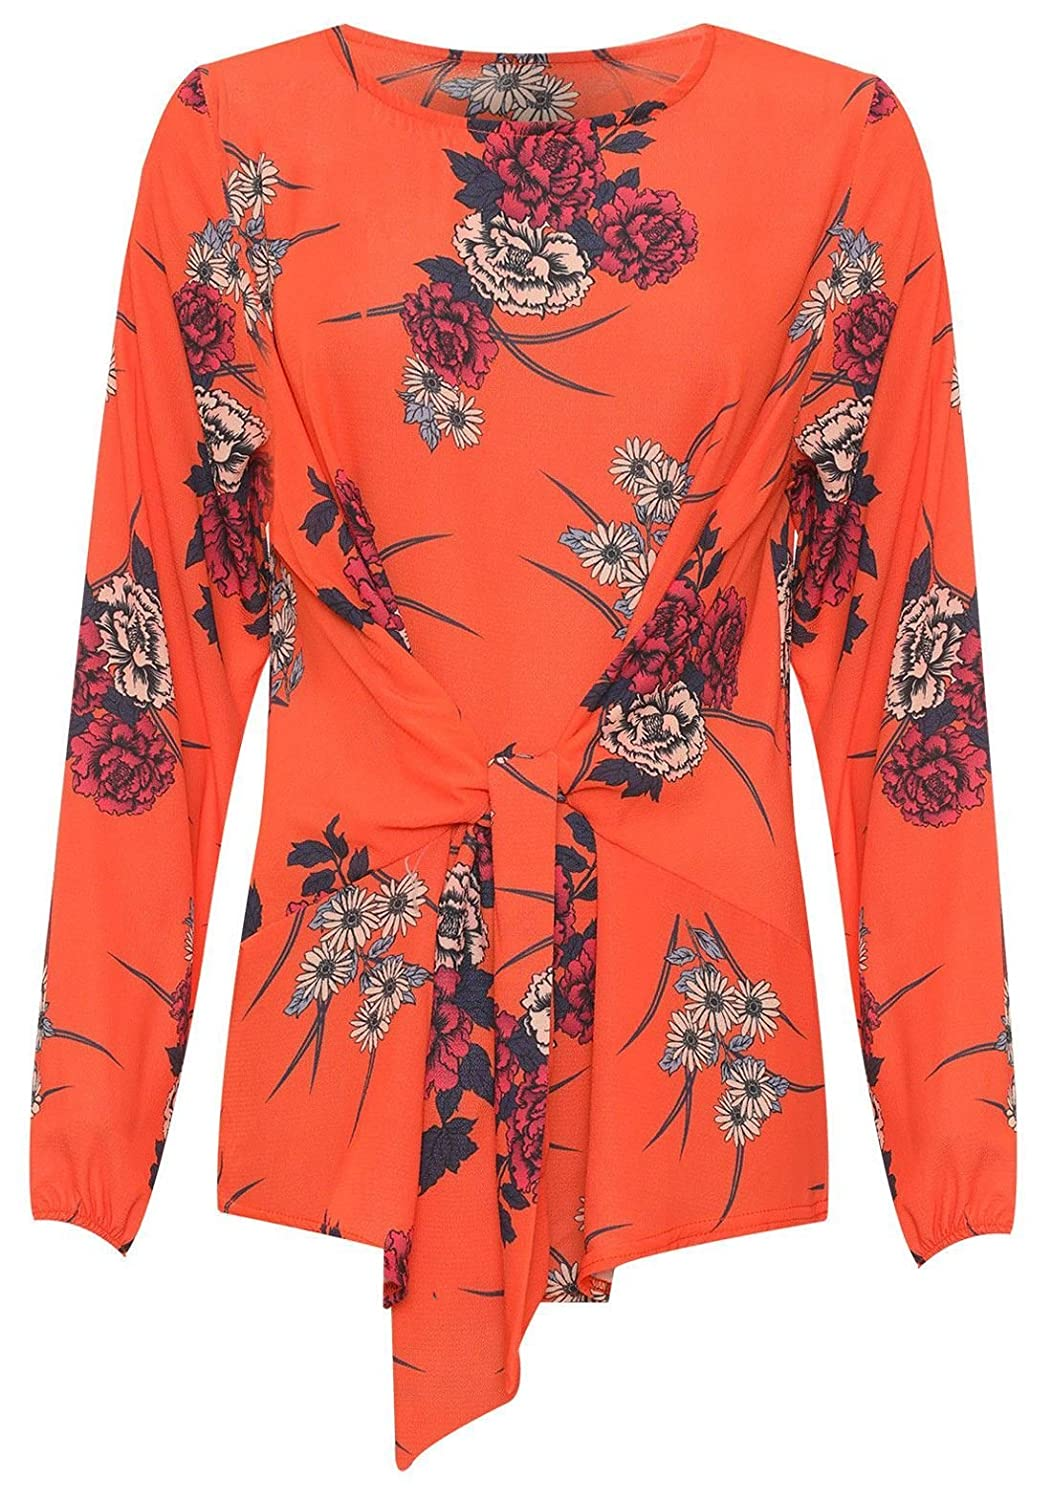 REAL LIFE FASHION LTD Ladies Stunning Floral Print Crepe Long Sleeve Blouse Womens Tied Front Top